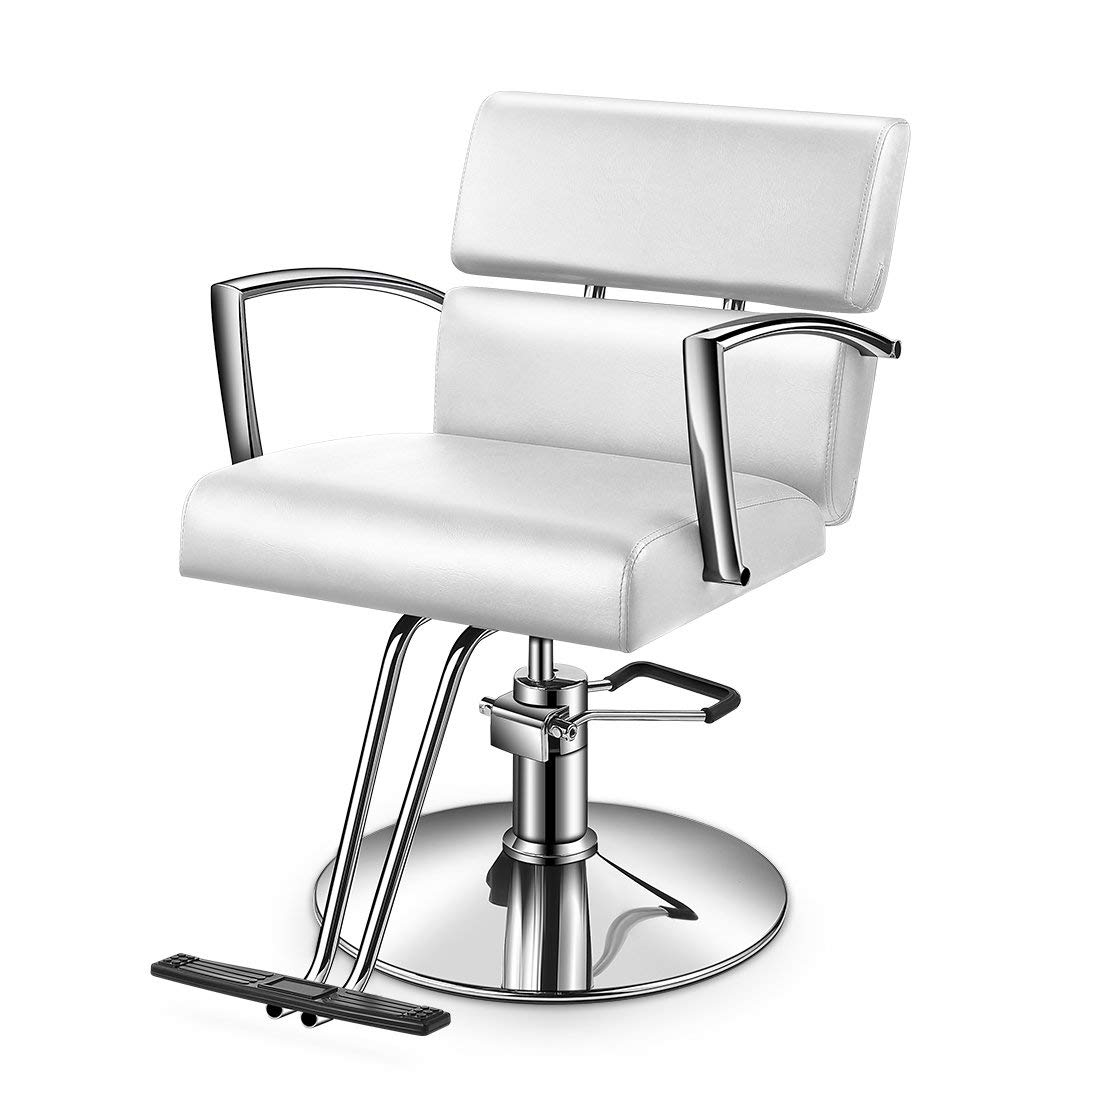 Miraculous Buy Baasha White Salon Chair For Hair Stylist Hydraulic Bralicious Painted Fabric Chair Ideas Braliciousco